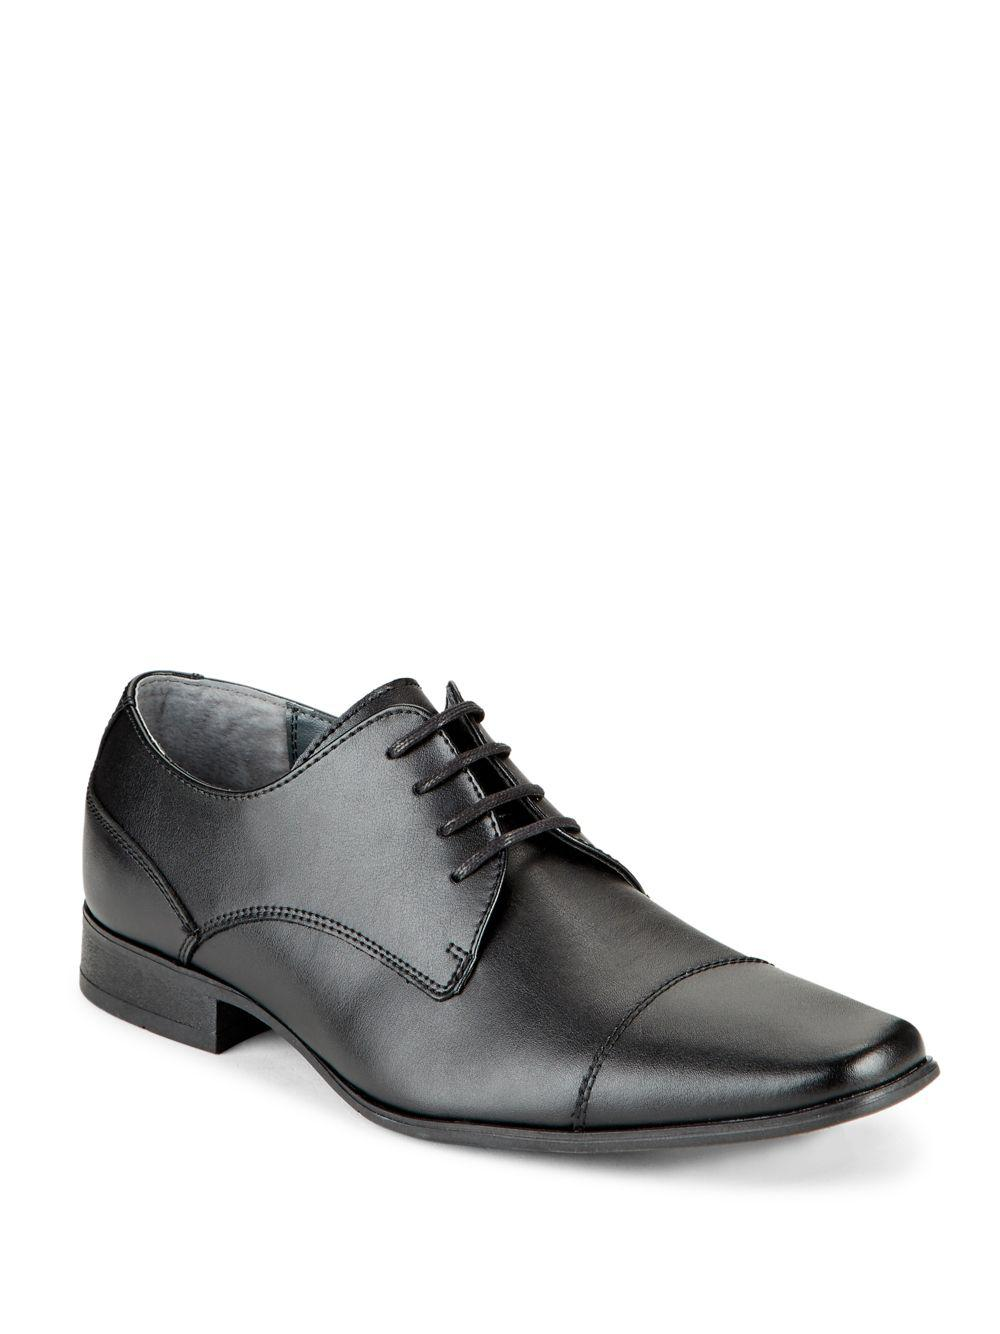 Lyst - Calvin Klein 205W39Nyc Bachman Leather Lace-up Shoes in Black for  Men - Save 14%